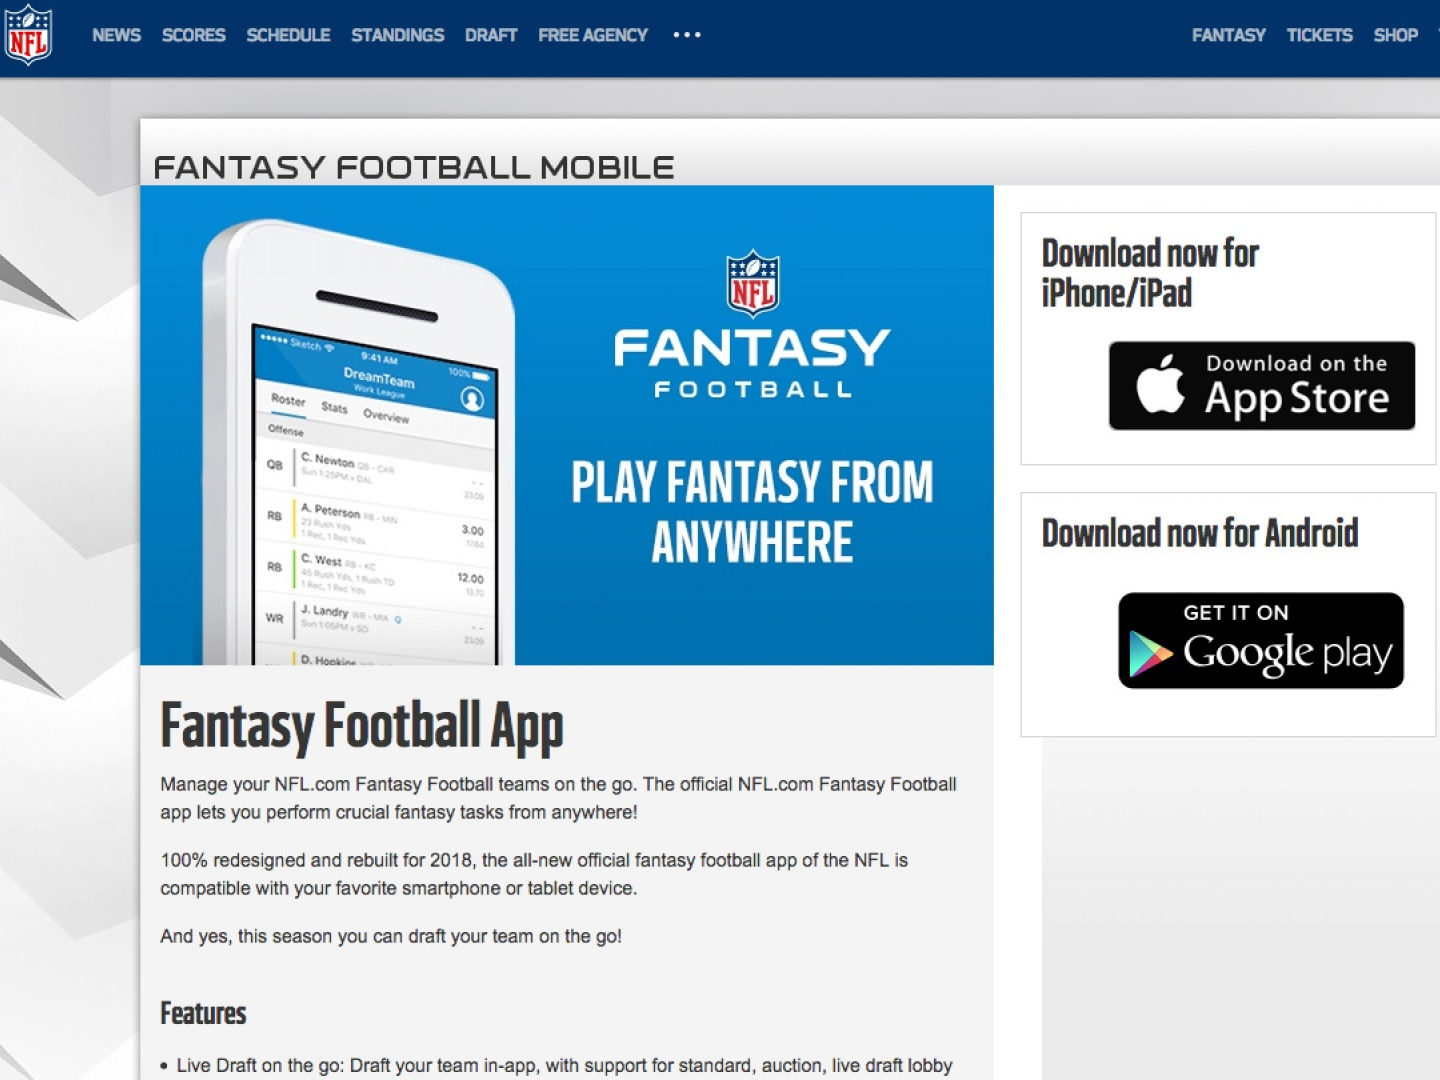 NFL.com Fantasy Football App Thumbnail